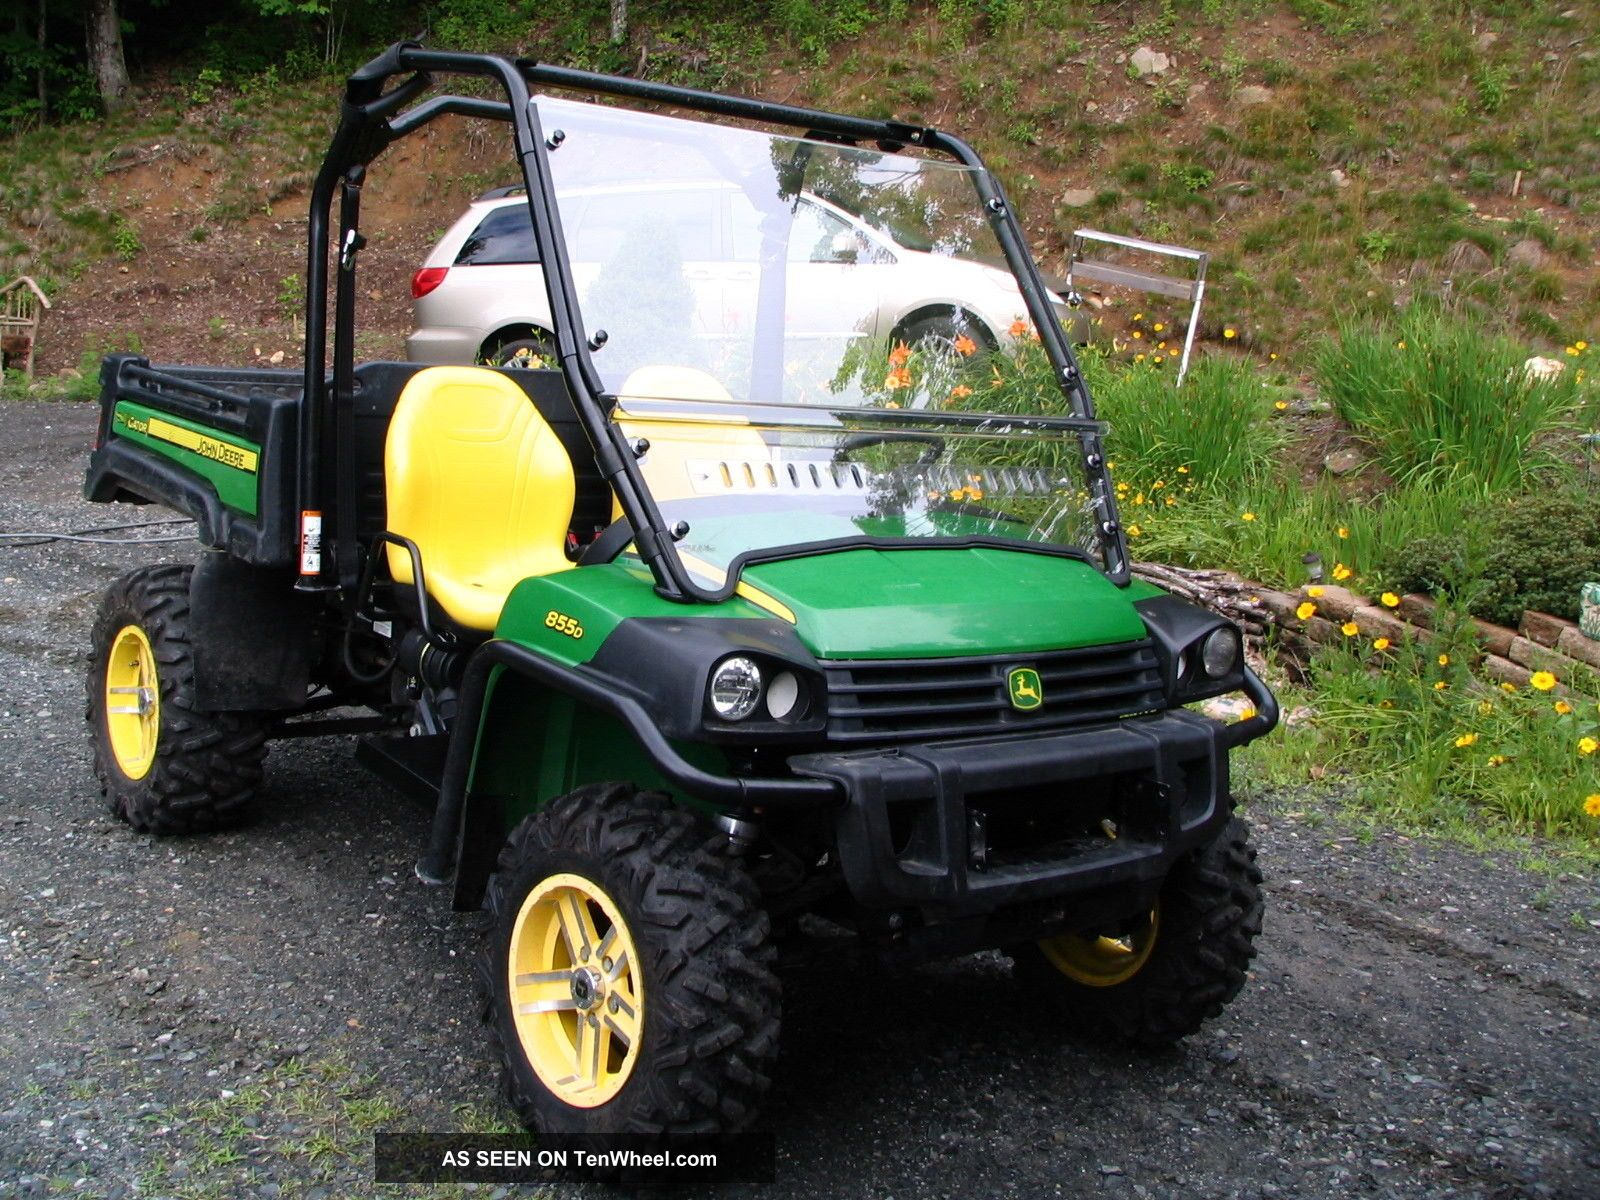 2012 john deere gator 855d. Black Bedroom Furniture Sets. Home Design Ideas